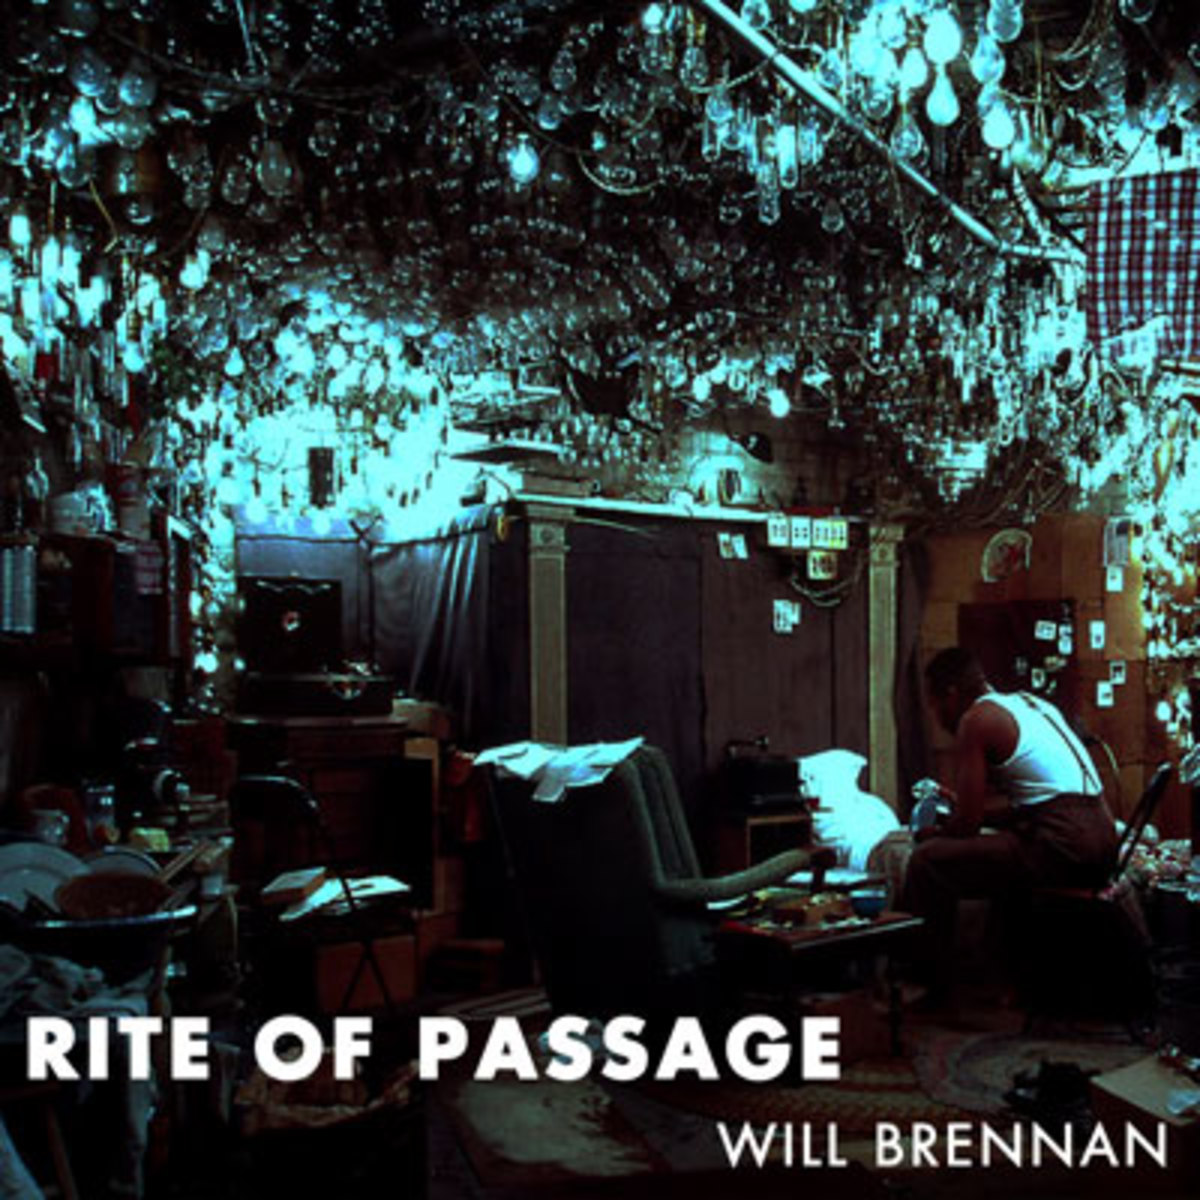 willbrennan-passage.jpg